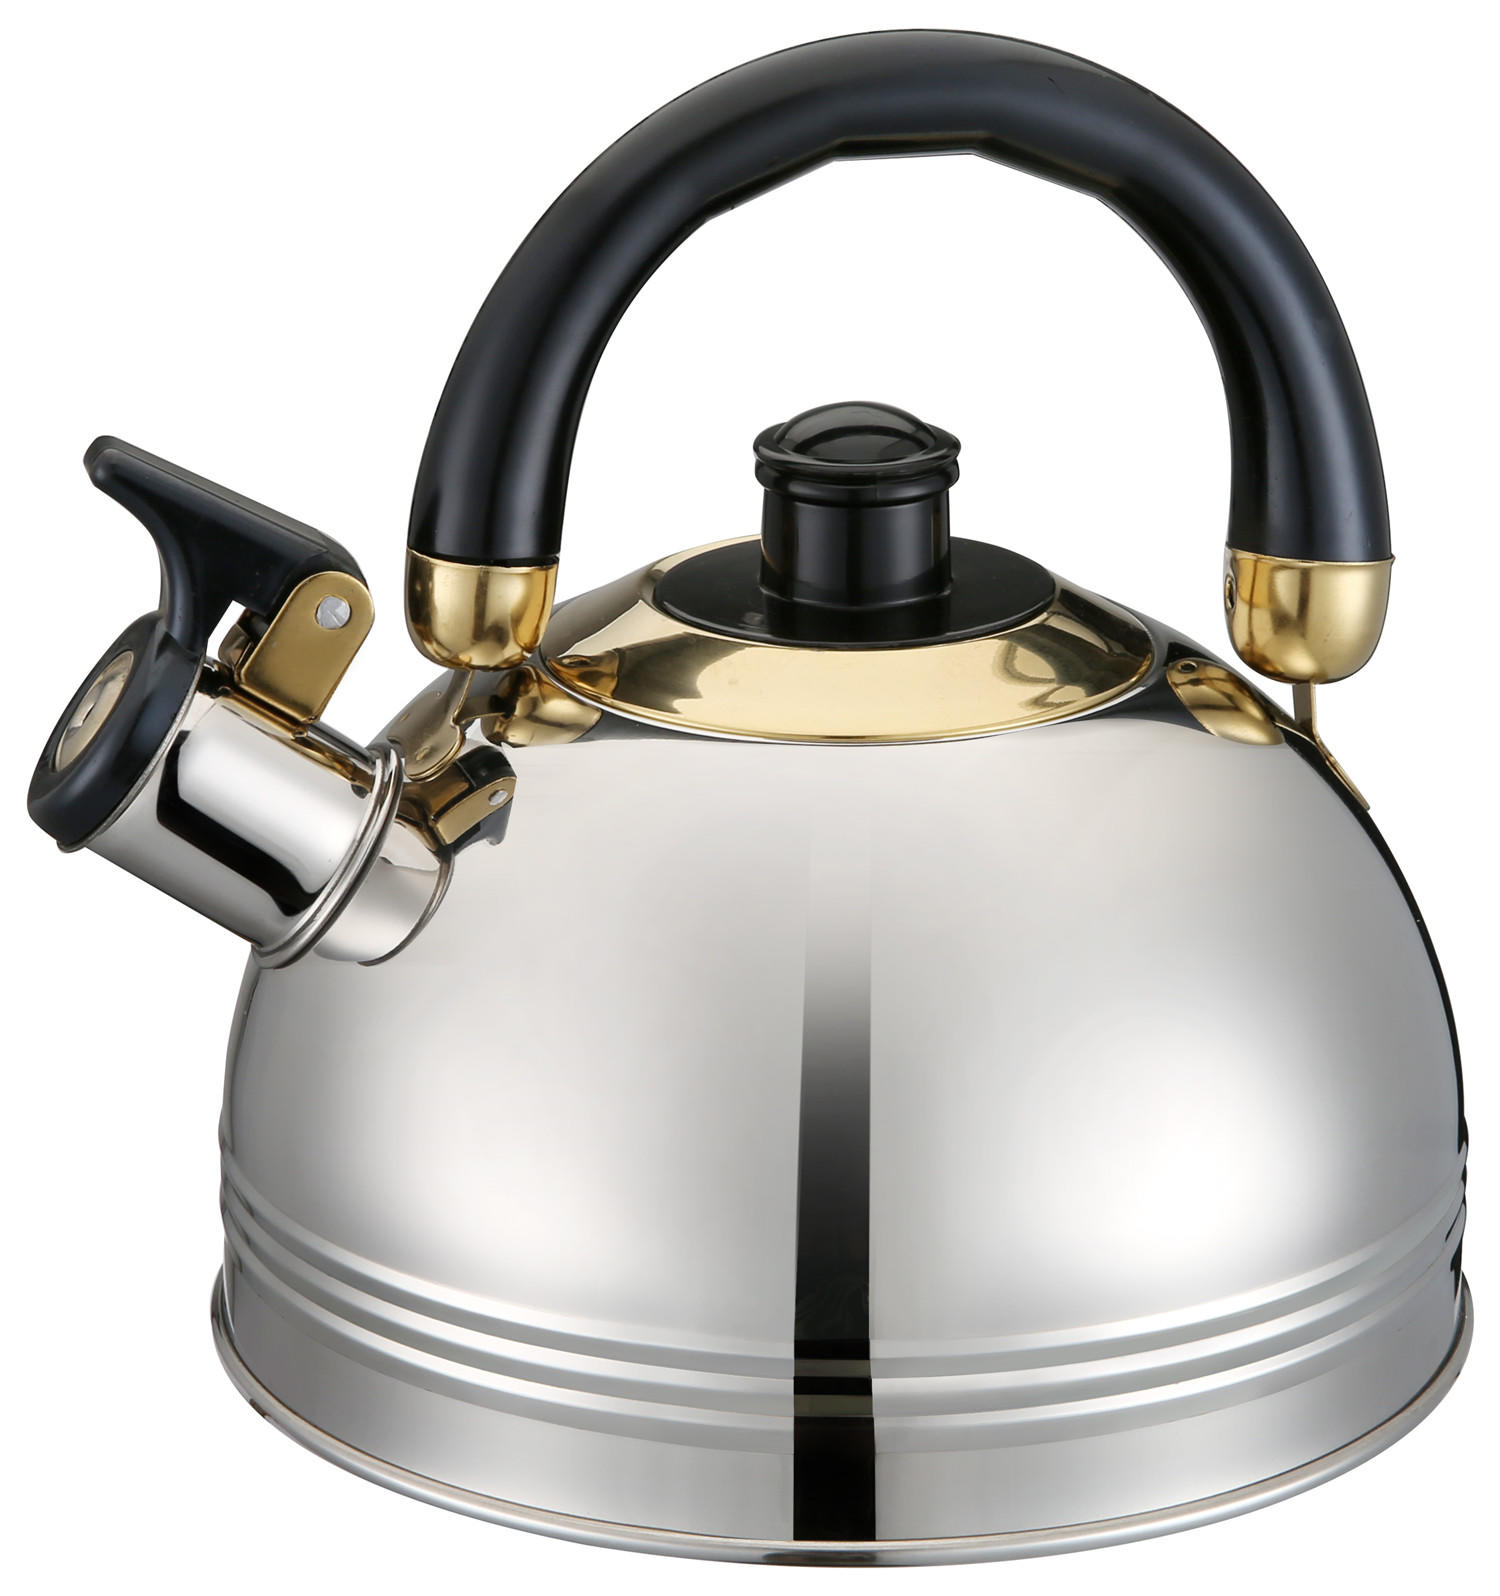 Large Capacity Home Kitchen Stainless Steel Whistling Kettle